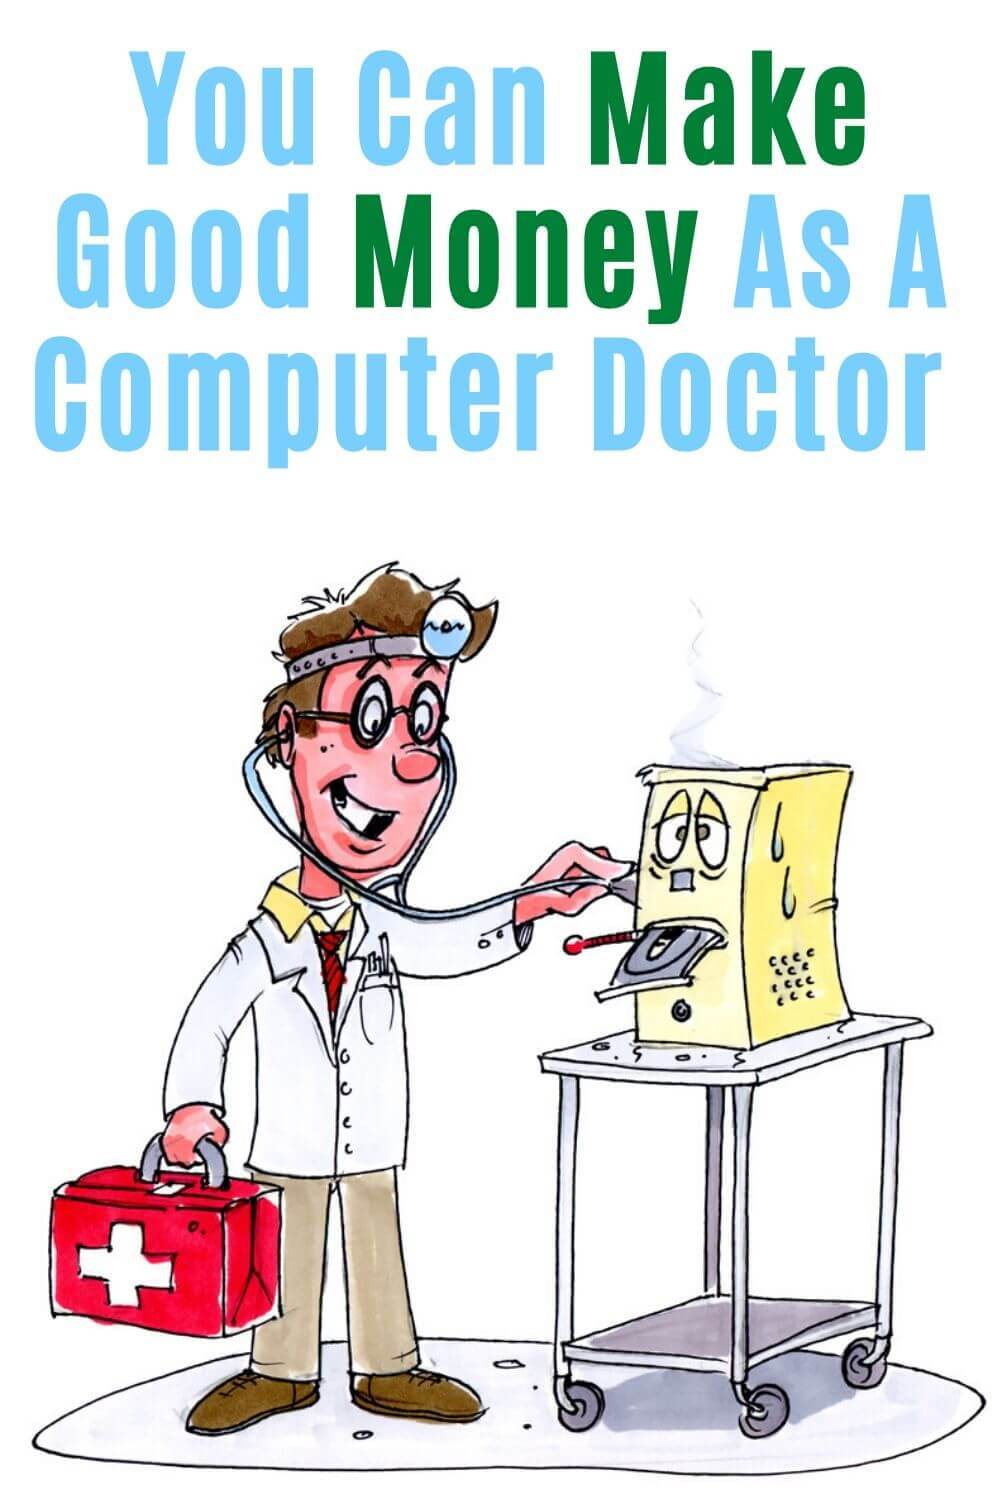 You can make good money as a computer doctor